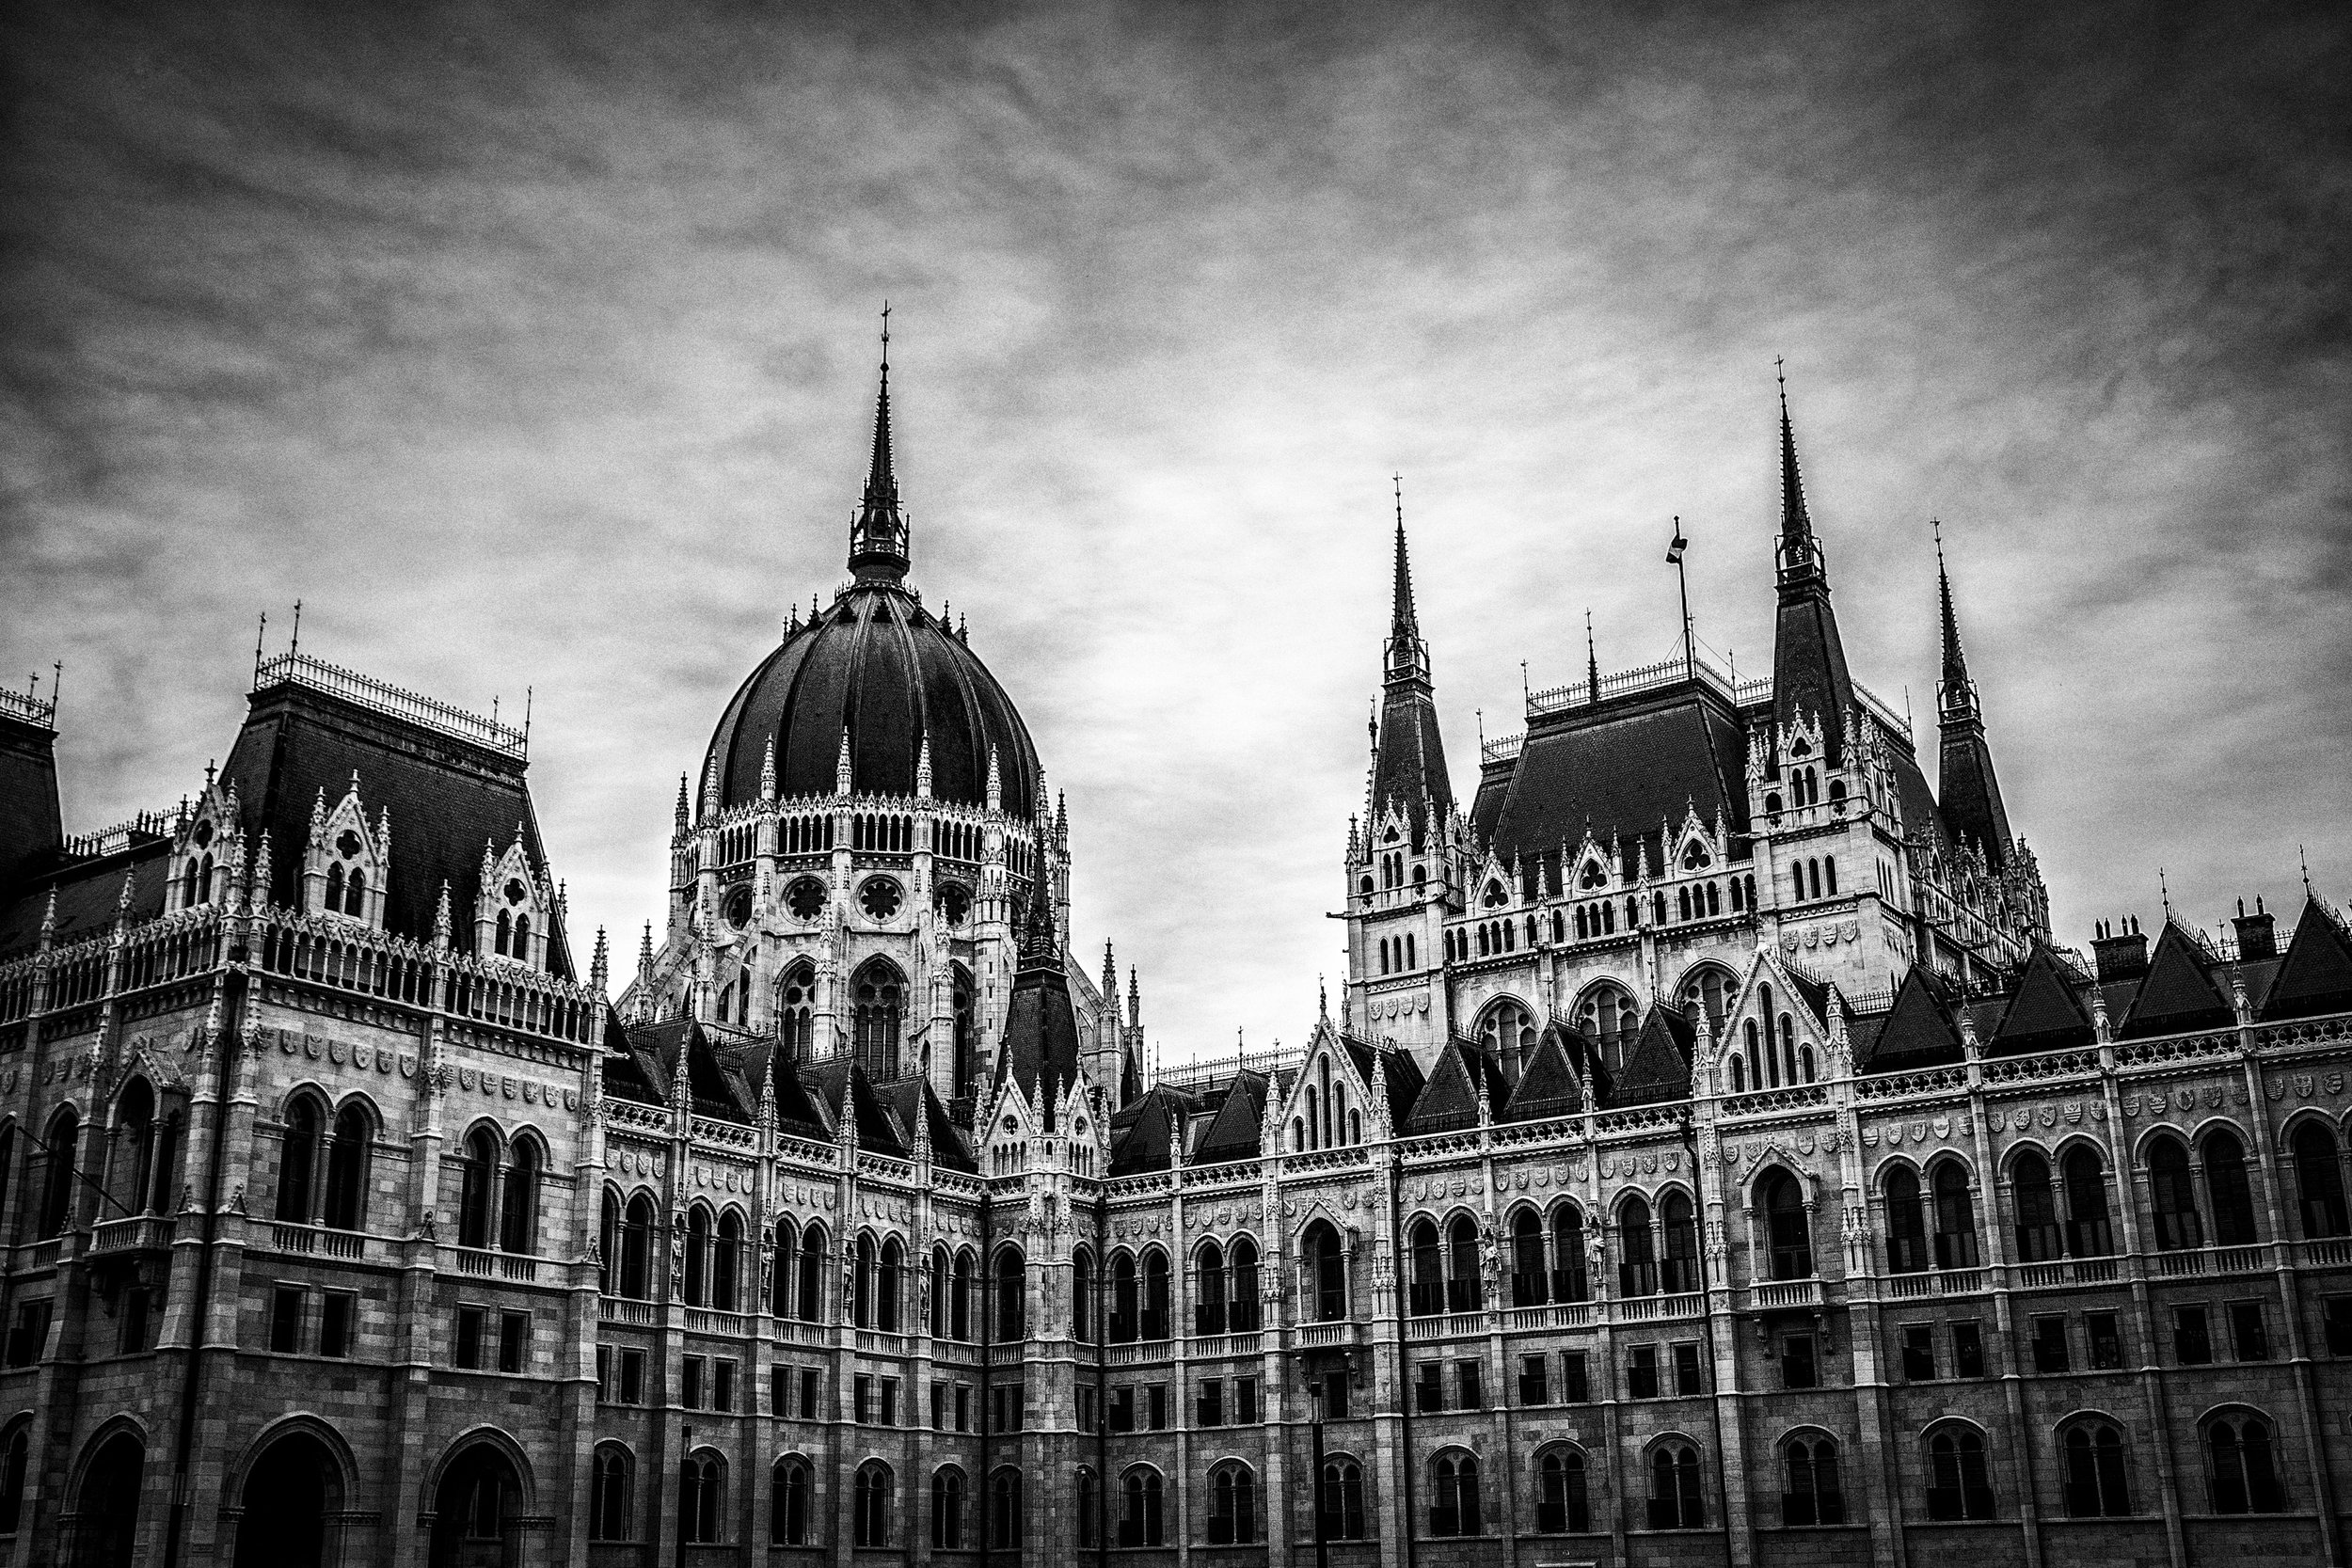 Hungarian Parliament: 1/640 @ f/7.1 ISO 500 35mm [Silver Efex Pro B/W render]